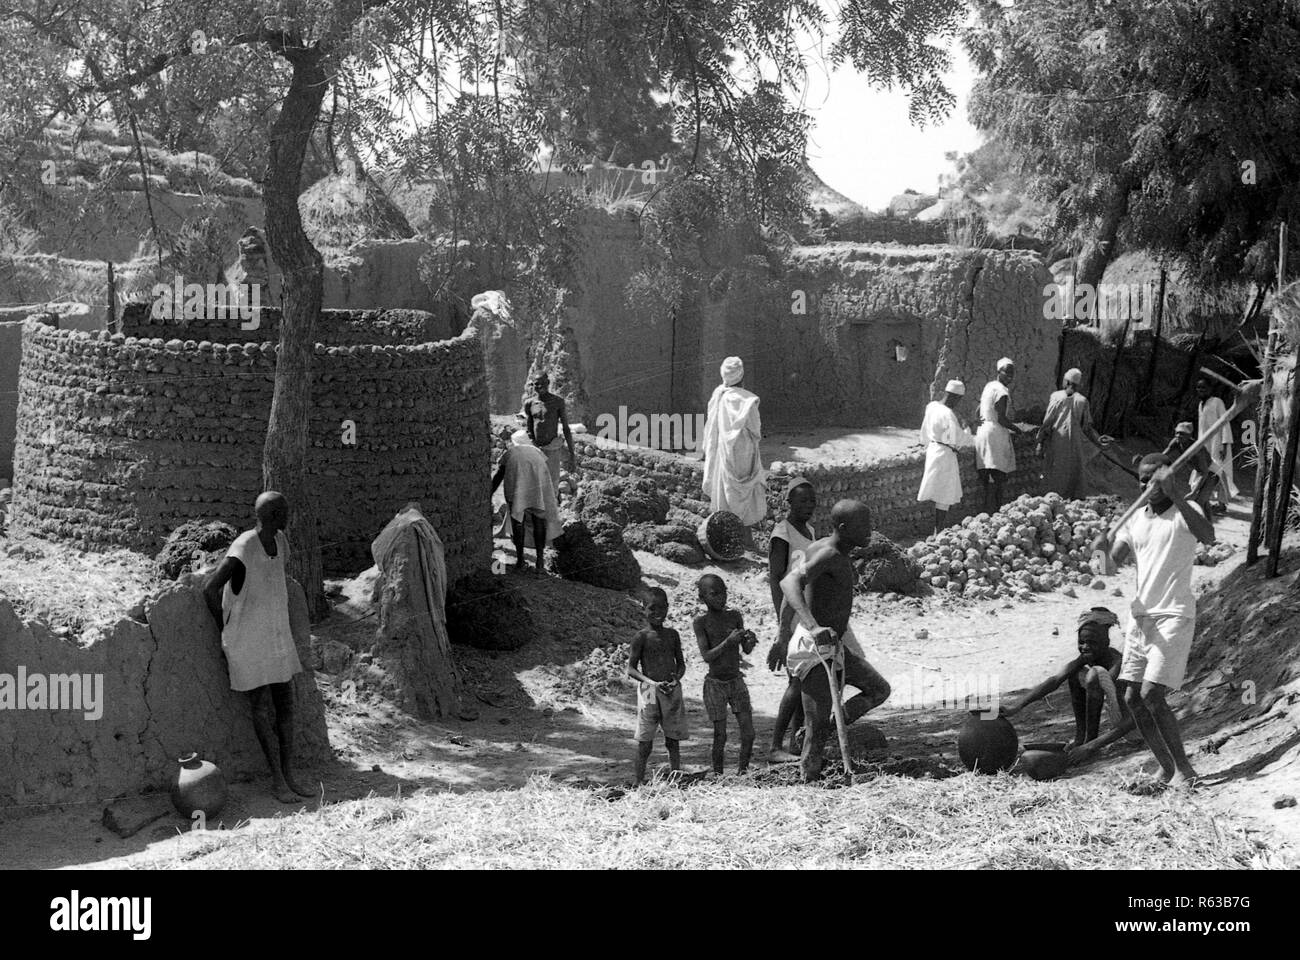 Building mud houses in Kano Nigeria Africa 1950s - Stock Image